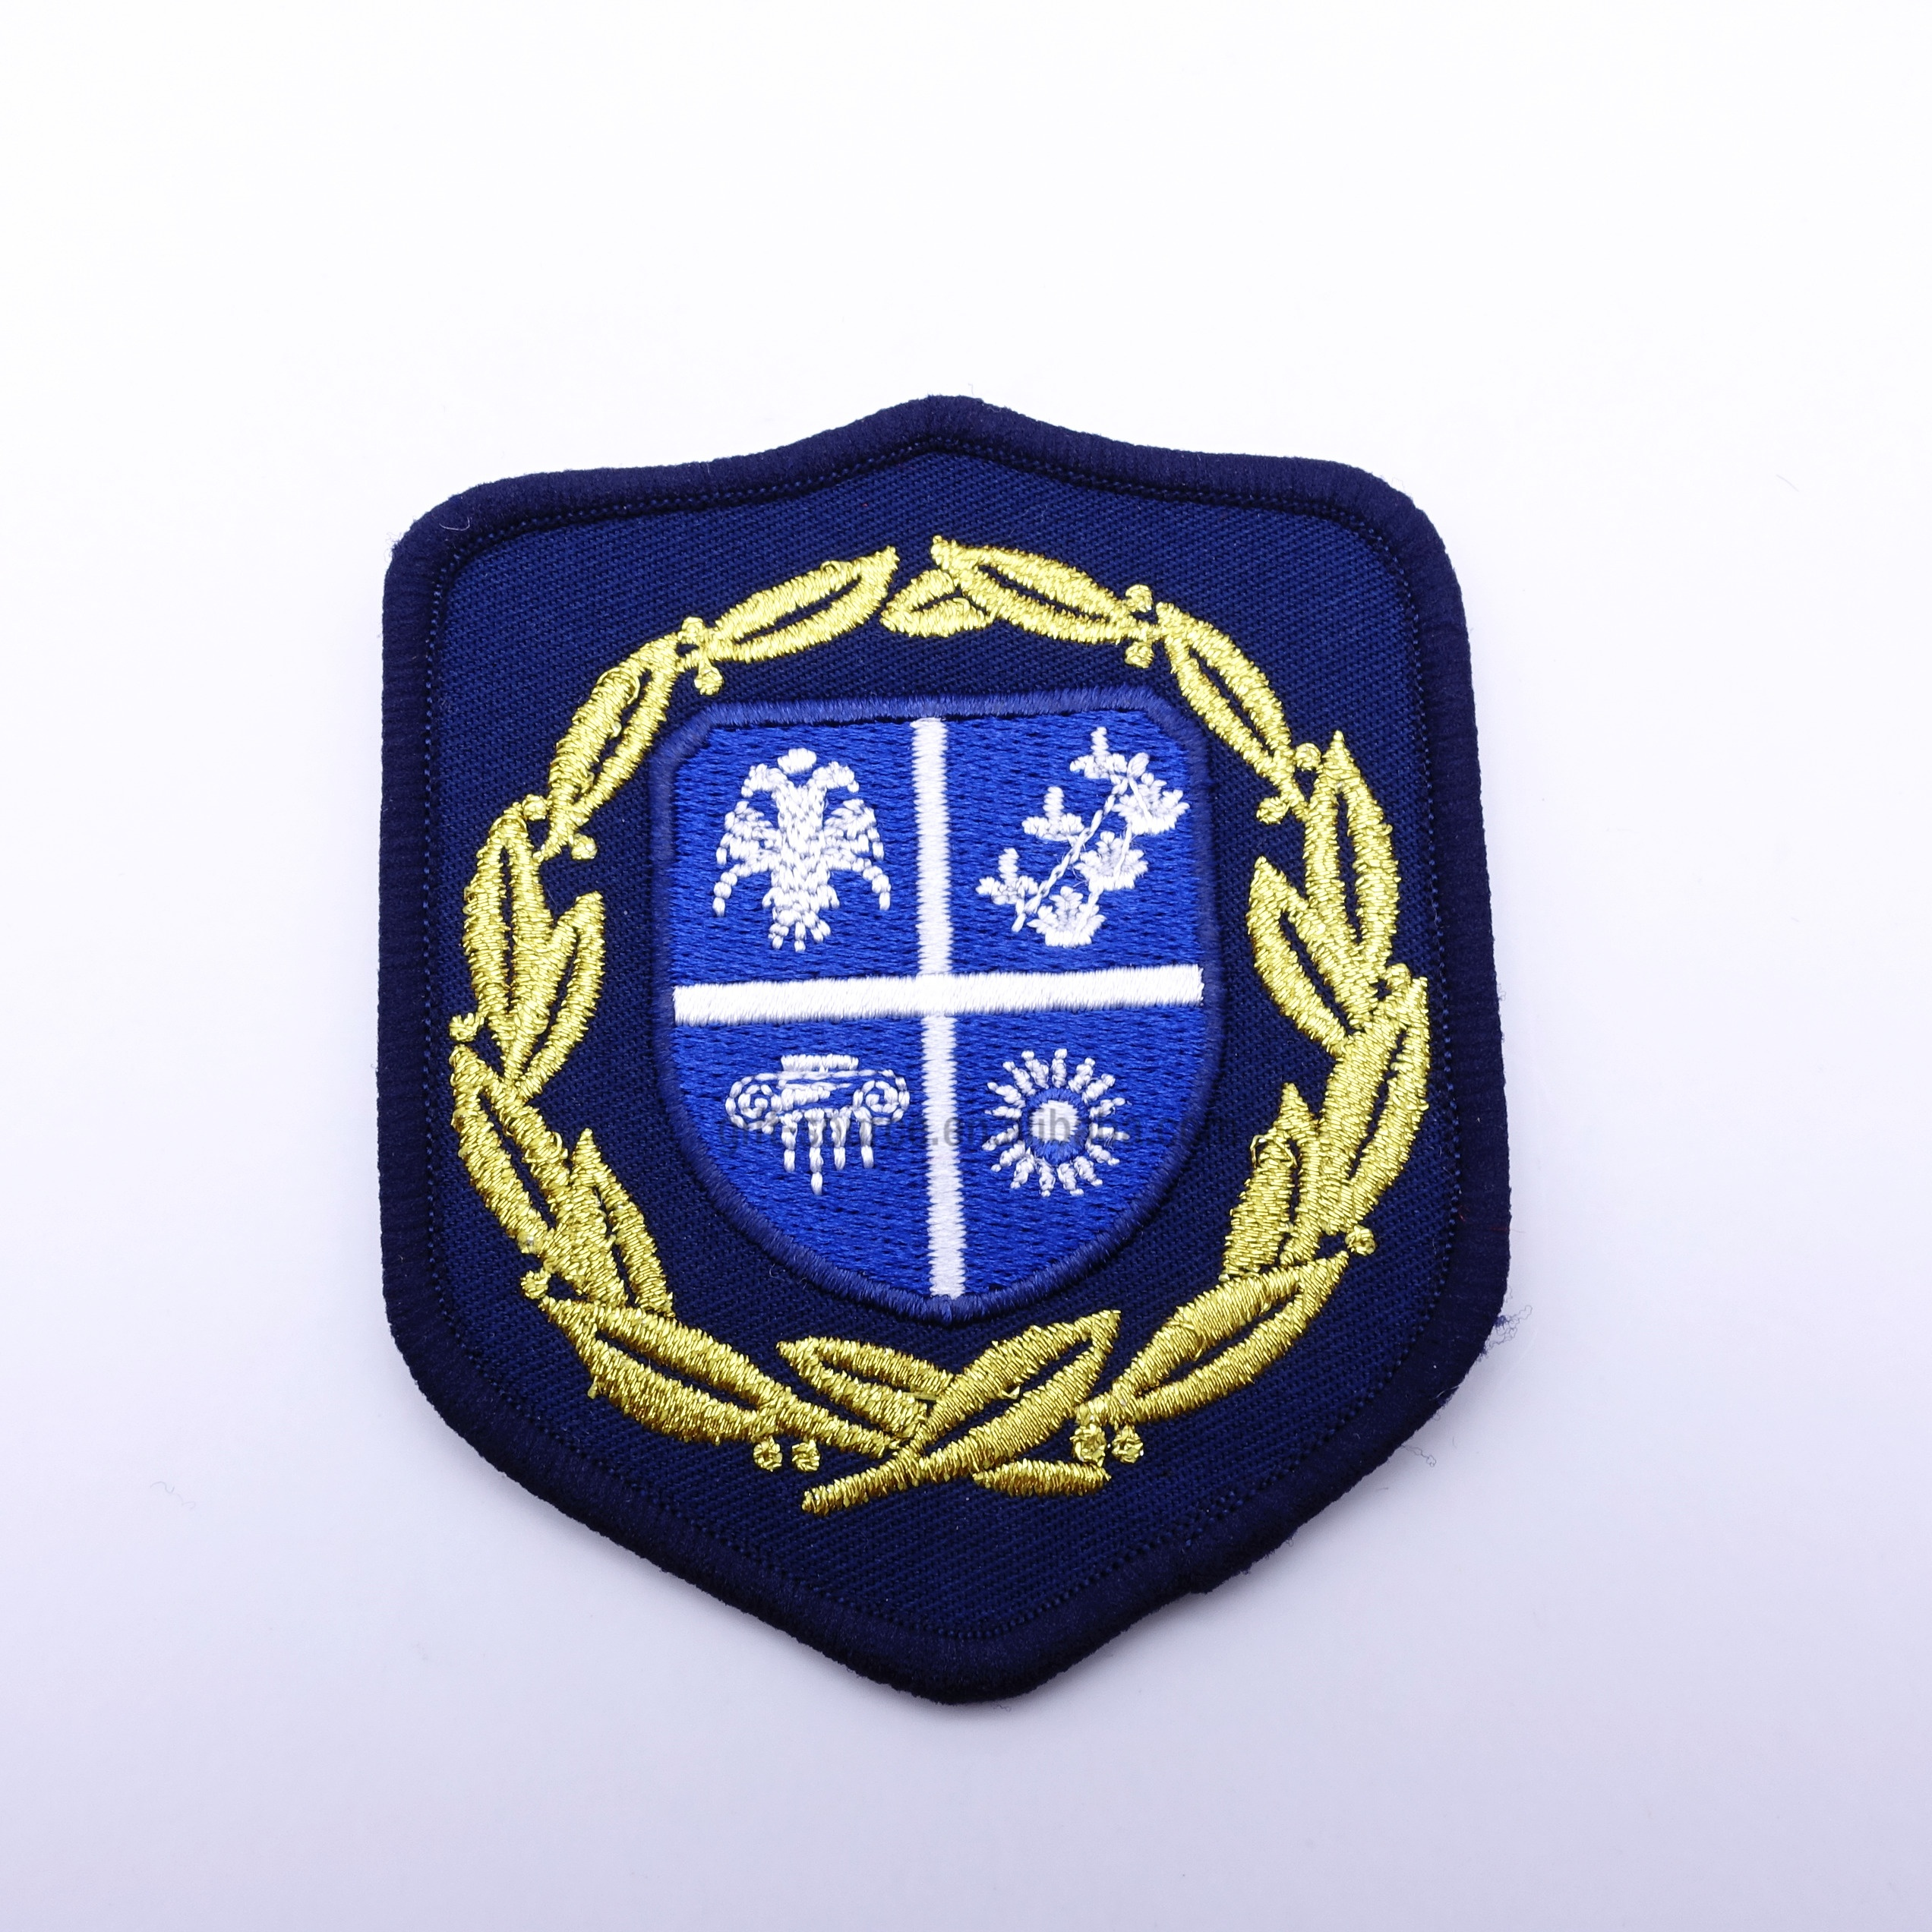 Custom Embroidery Us Army Military Patch - Buy Embroidery Blank  Patches,Custom Made Military Patches,Canadian Military Patches Product on  Alibaba com